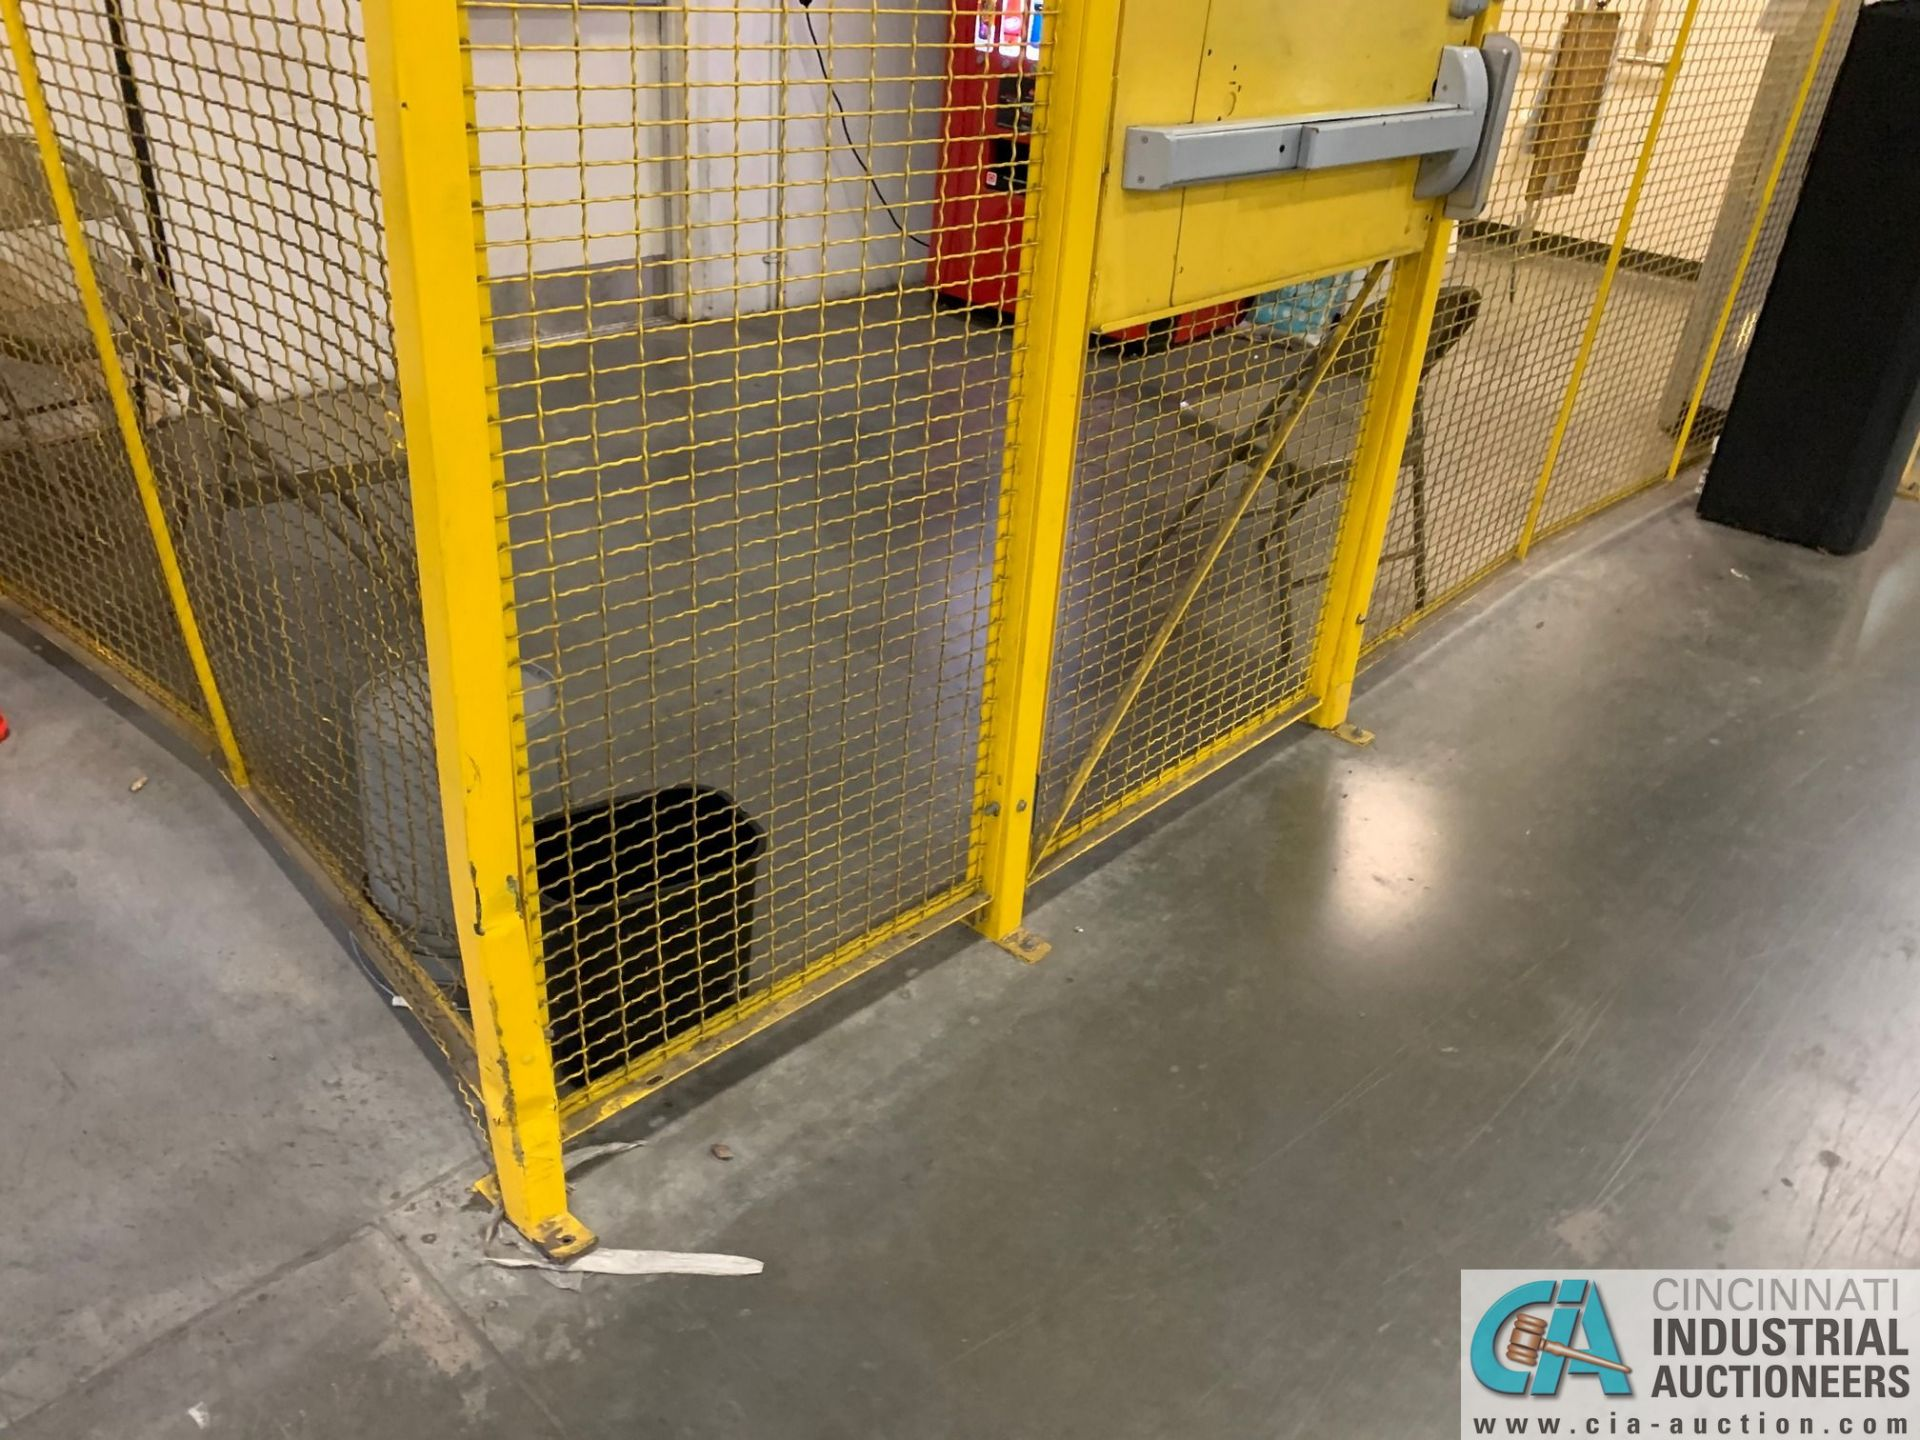 SAFETY CAGE - BACK DRIVERS (5400 OAKLEY INDUSTRIAL BLVD., FAIRBURN, GA 30213) - Image 2 of 7